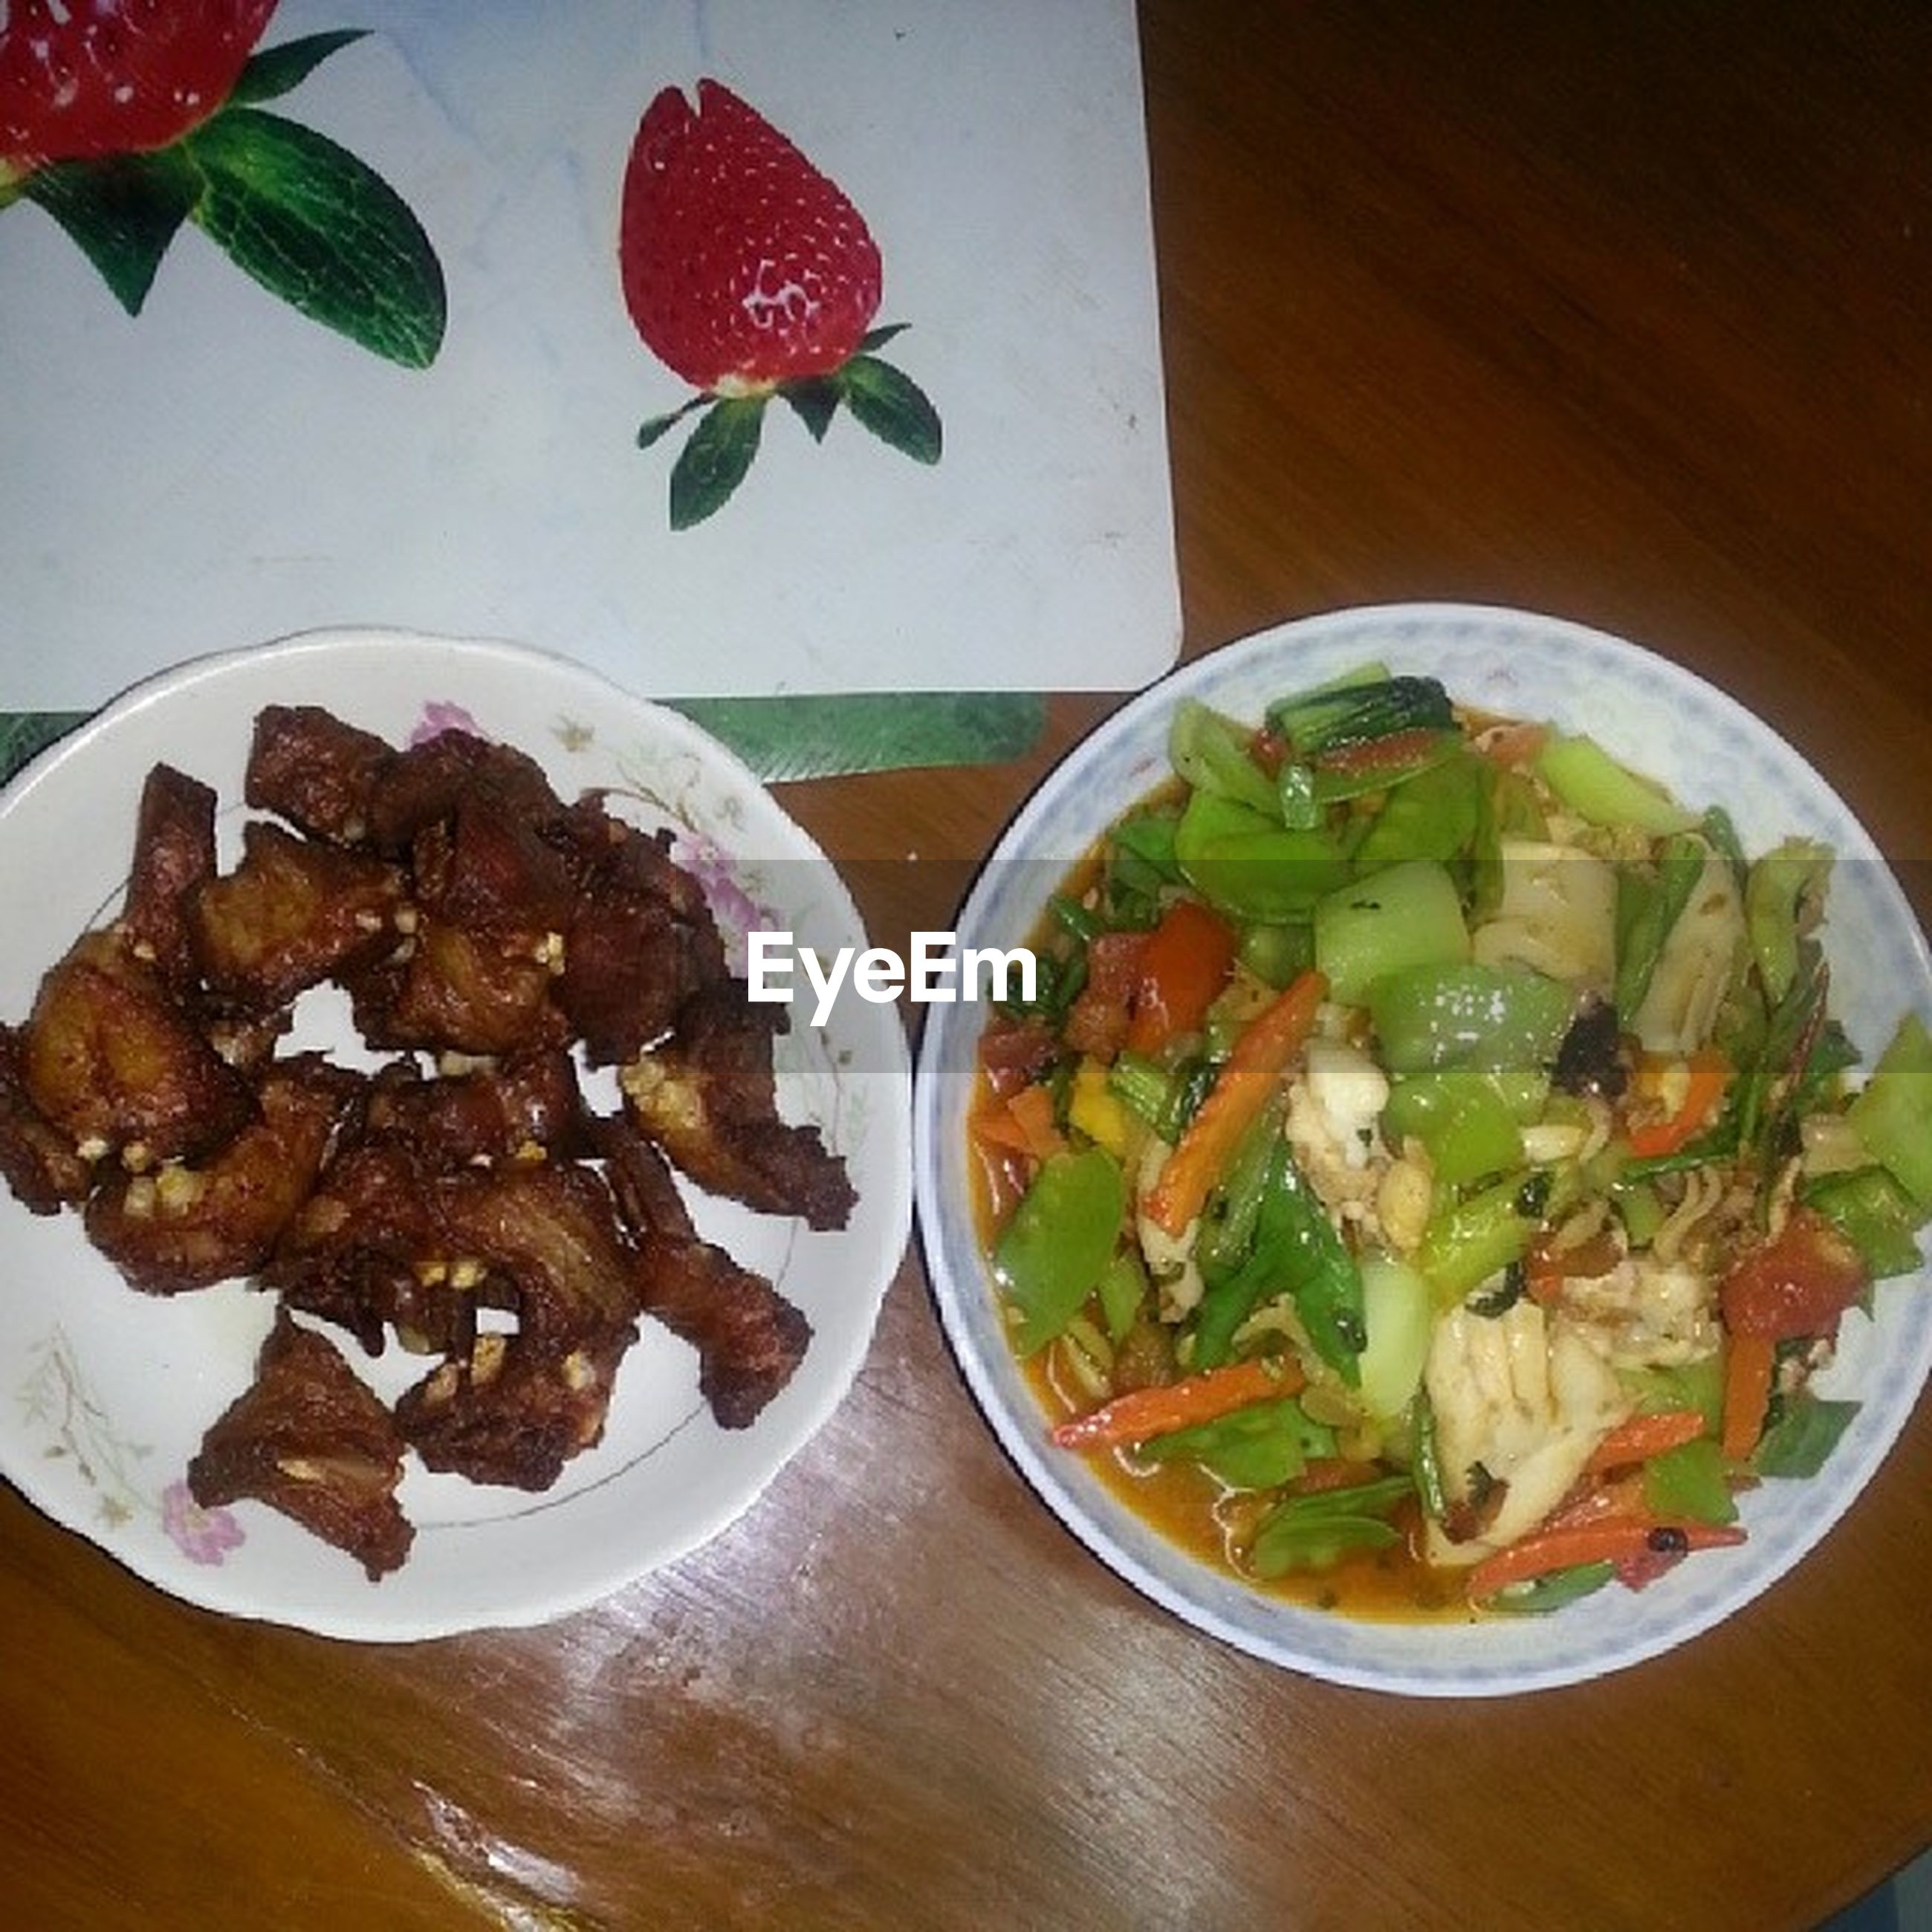 food and drink, food, freshness, indoors, plate, ready-to-eat, healthy eating, still life, table, serving size, salad, meal, high angle view, indulgence, served, bowl, directly above, vegetable, meat, close-up